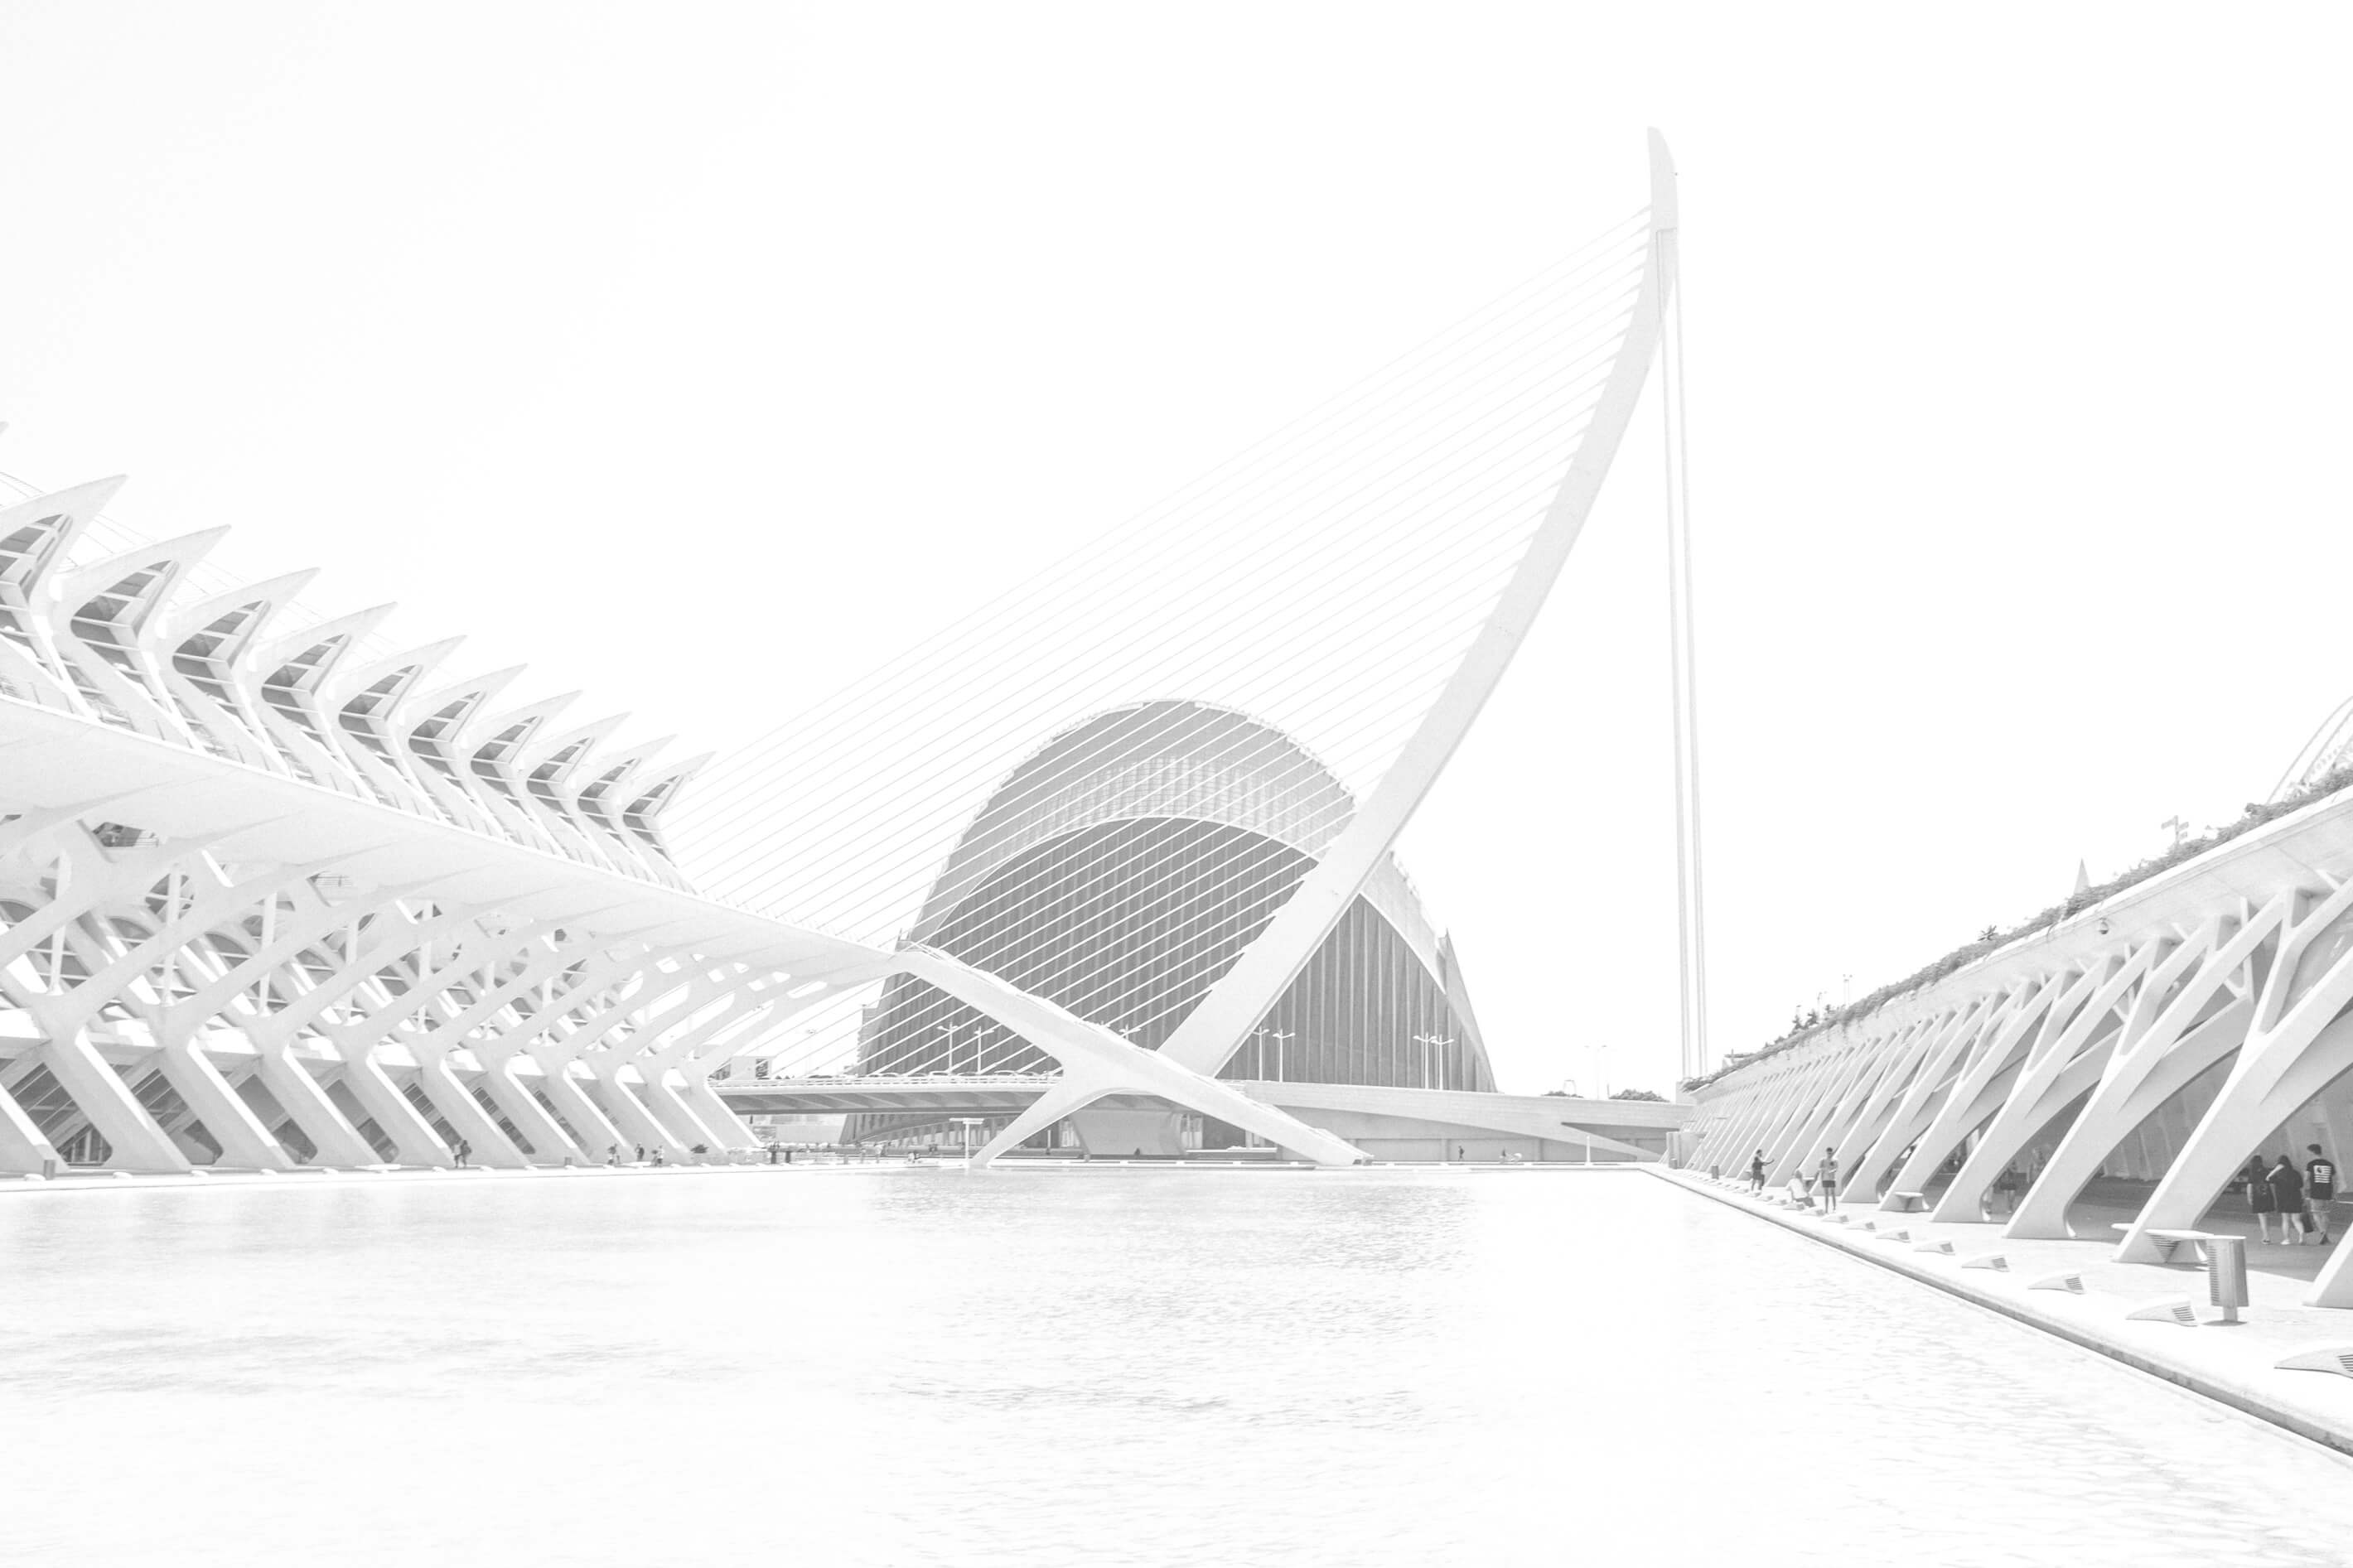 160828_valencia_whiteout_1370